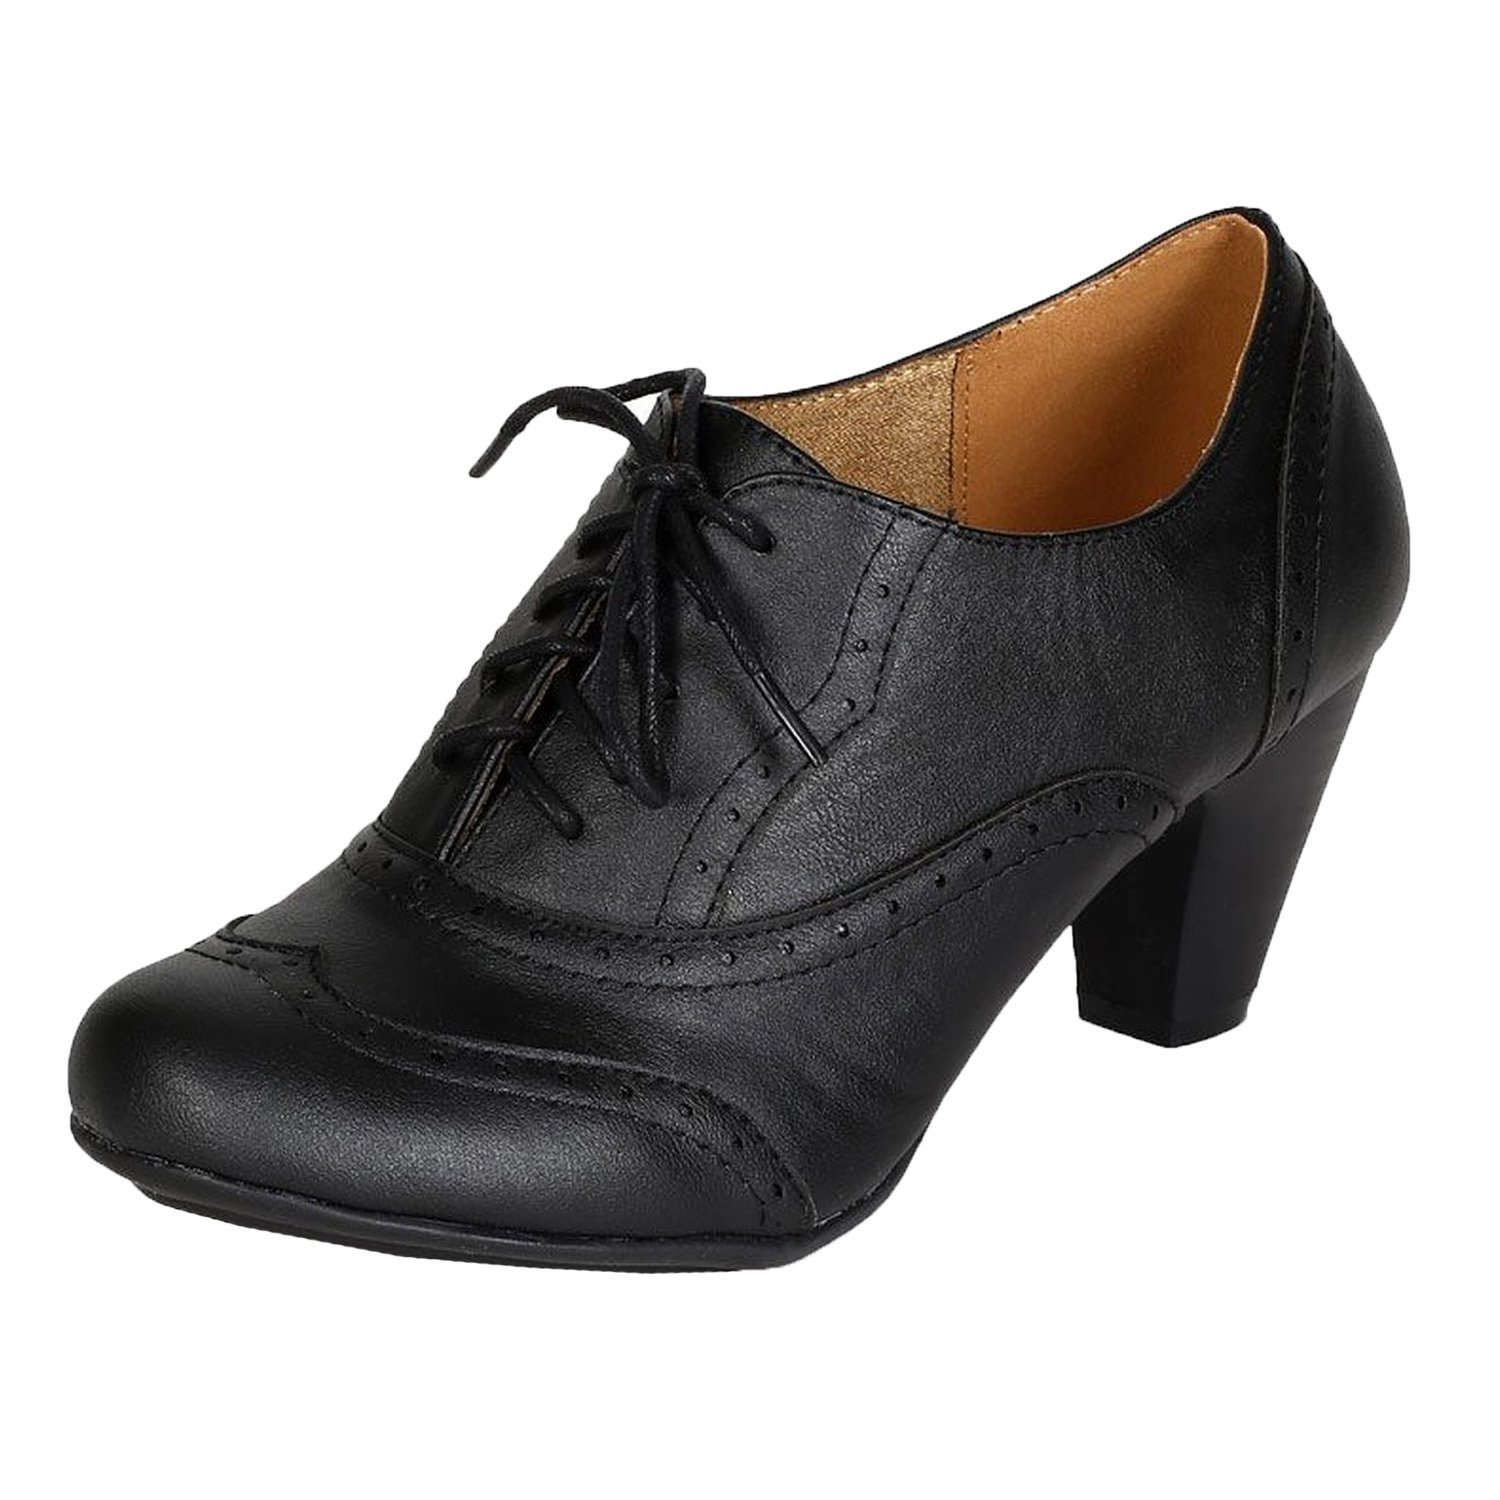 1940s Womens Shoe Styles Lace Up Oxford Chunky Heel Bootie $21.99 AT vintagedancer.com